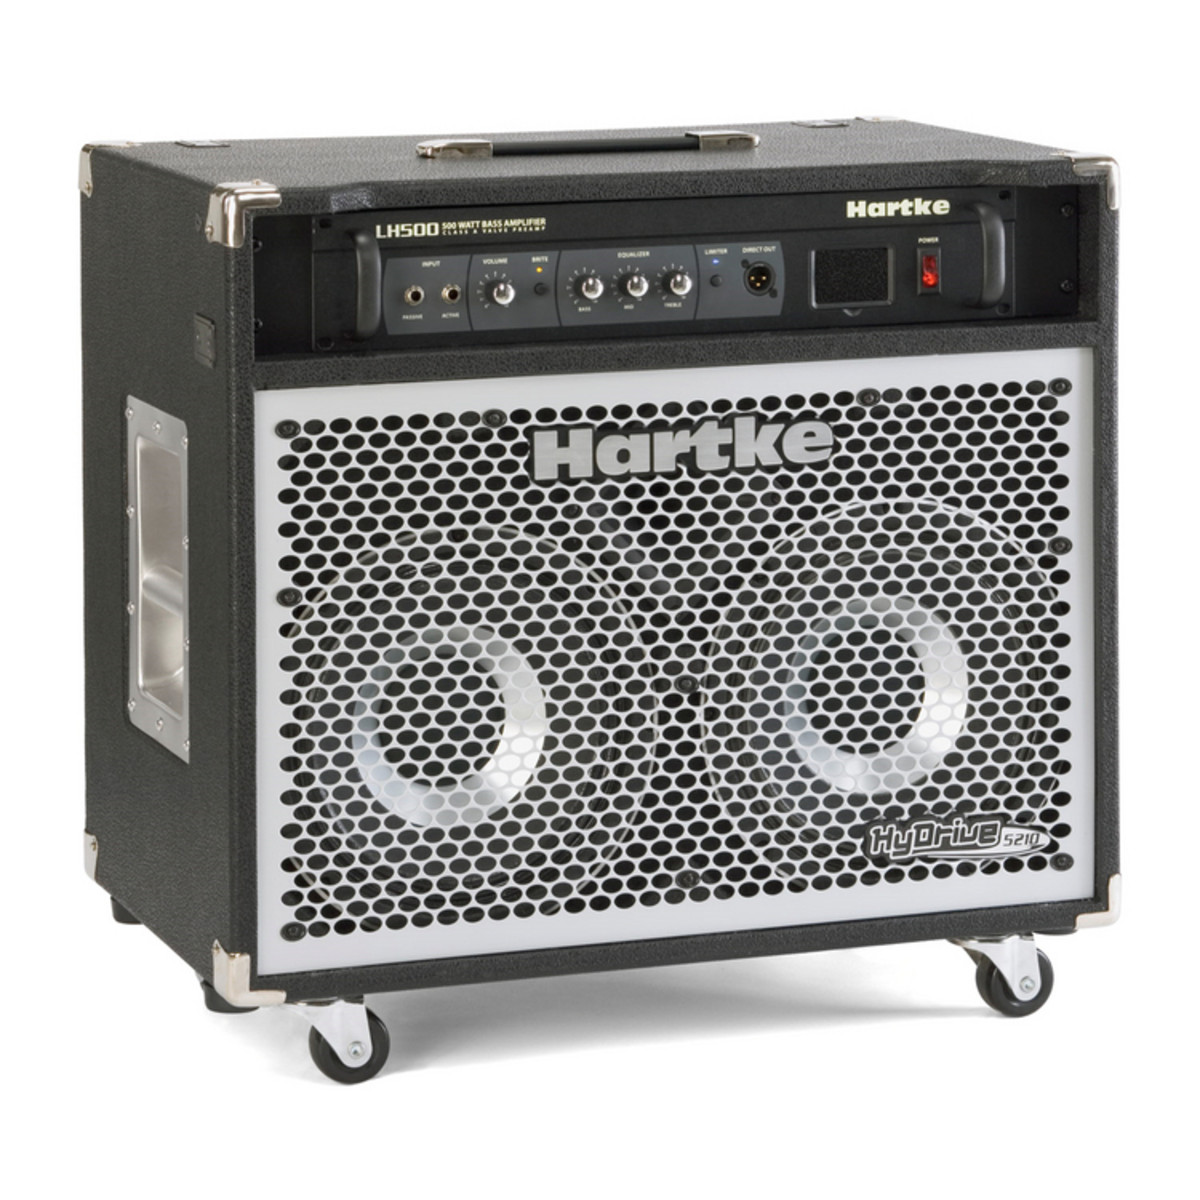 hartke 5210 hydrive bass combo amp at gear4music. Black Bedroom Furniture Sets. Home Design Ideas